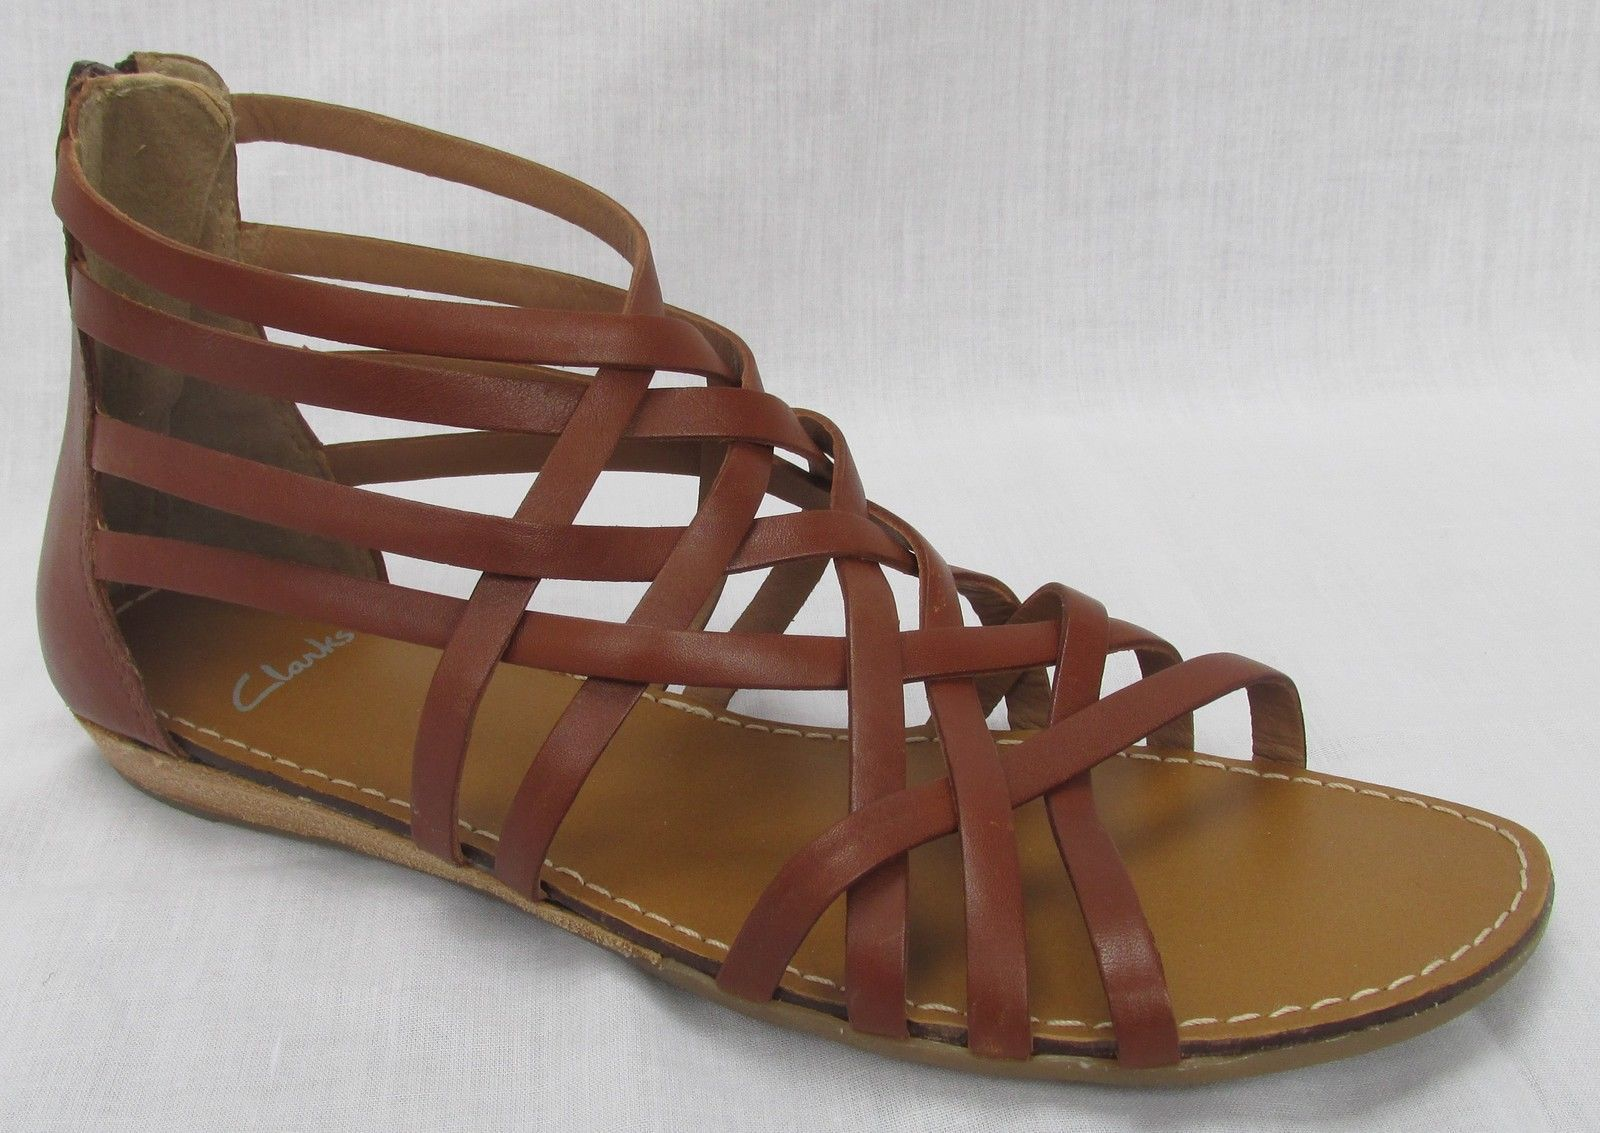 clarks cushion soft sandals